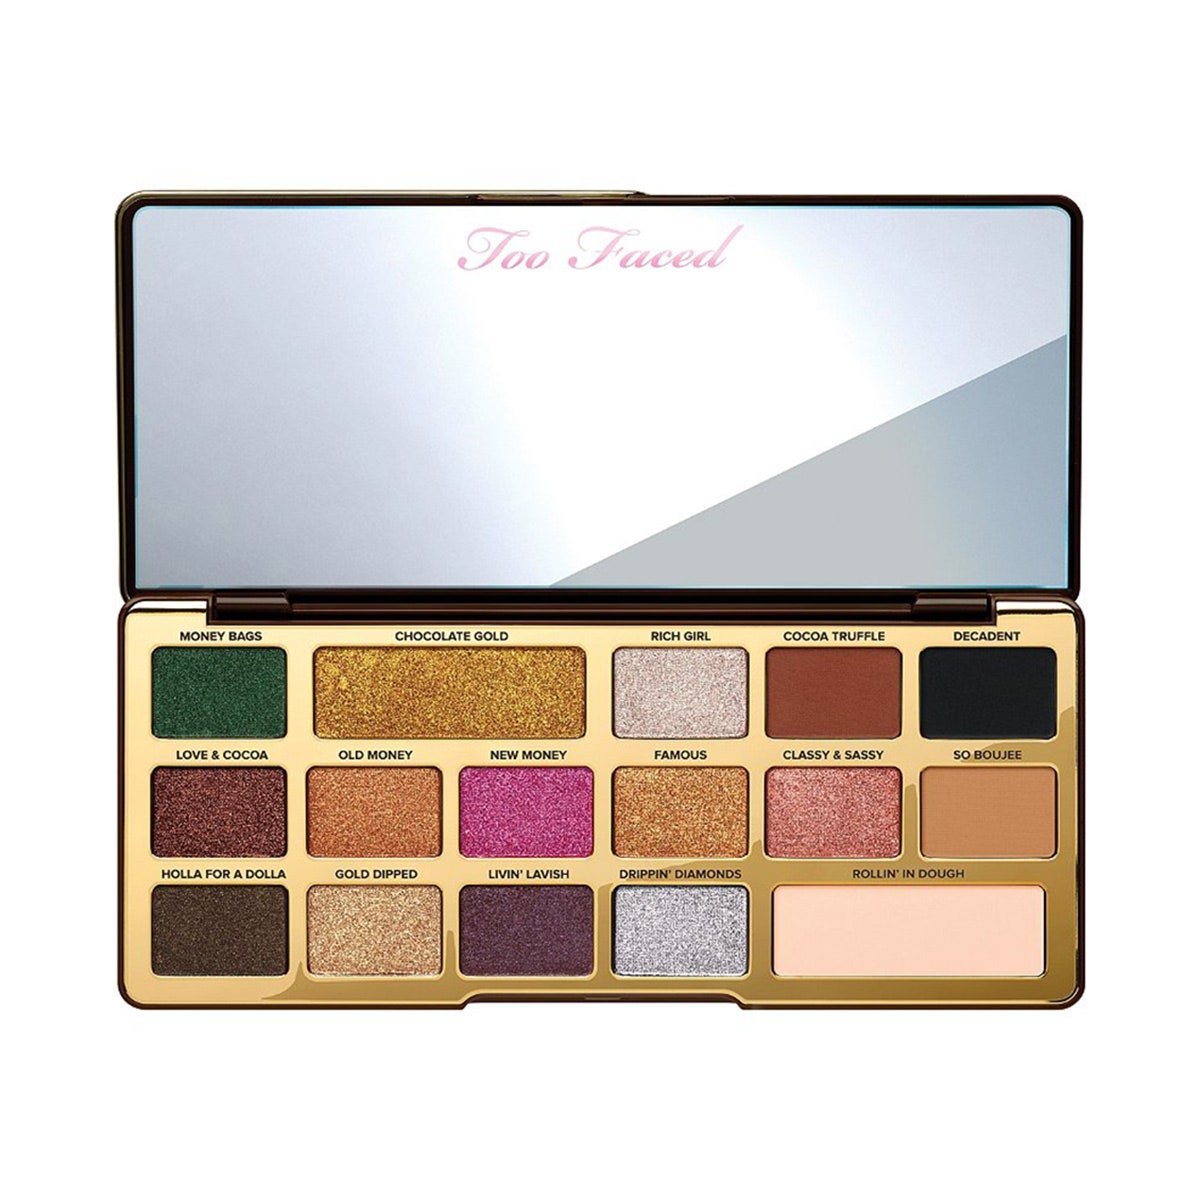 too faced eyeshadow palette with metallic and matte holiday shades